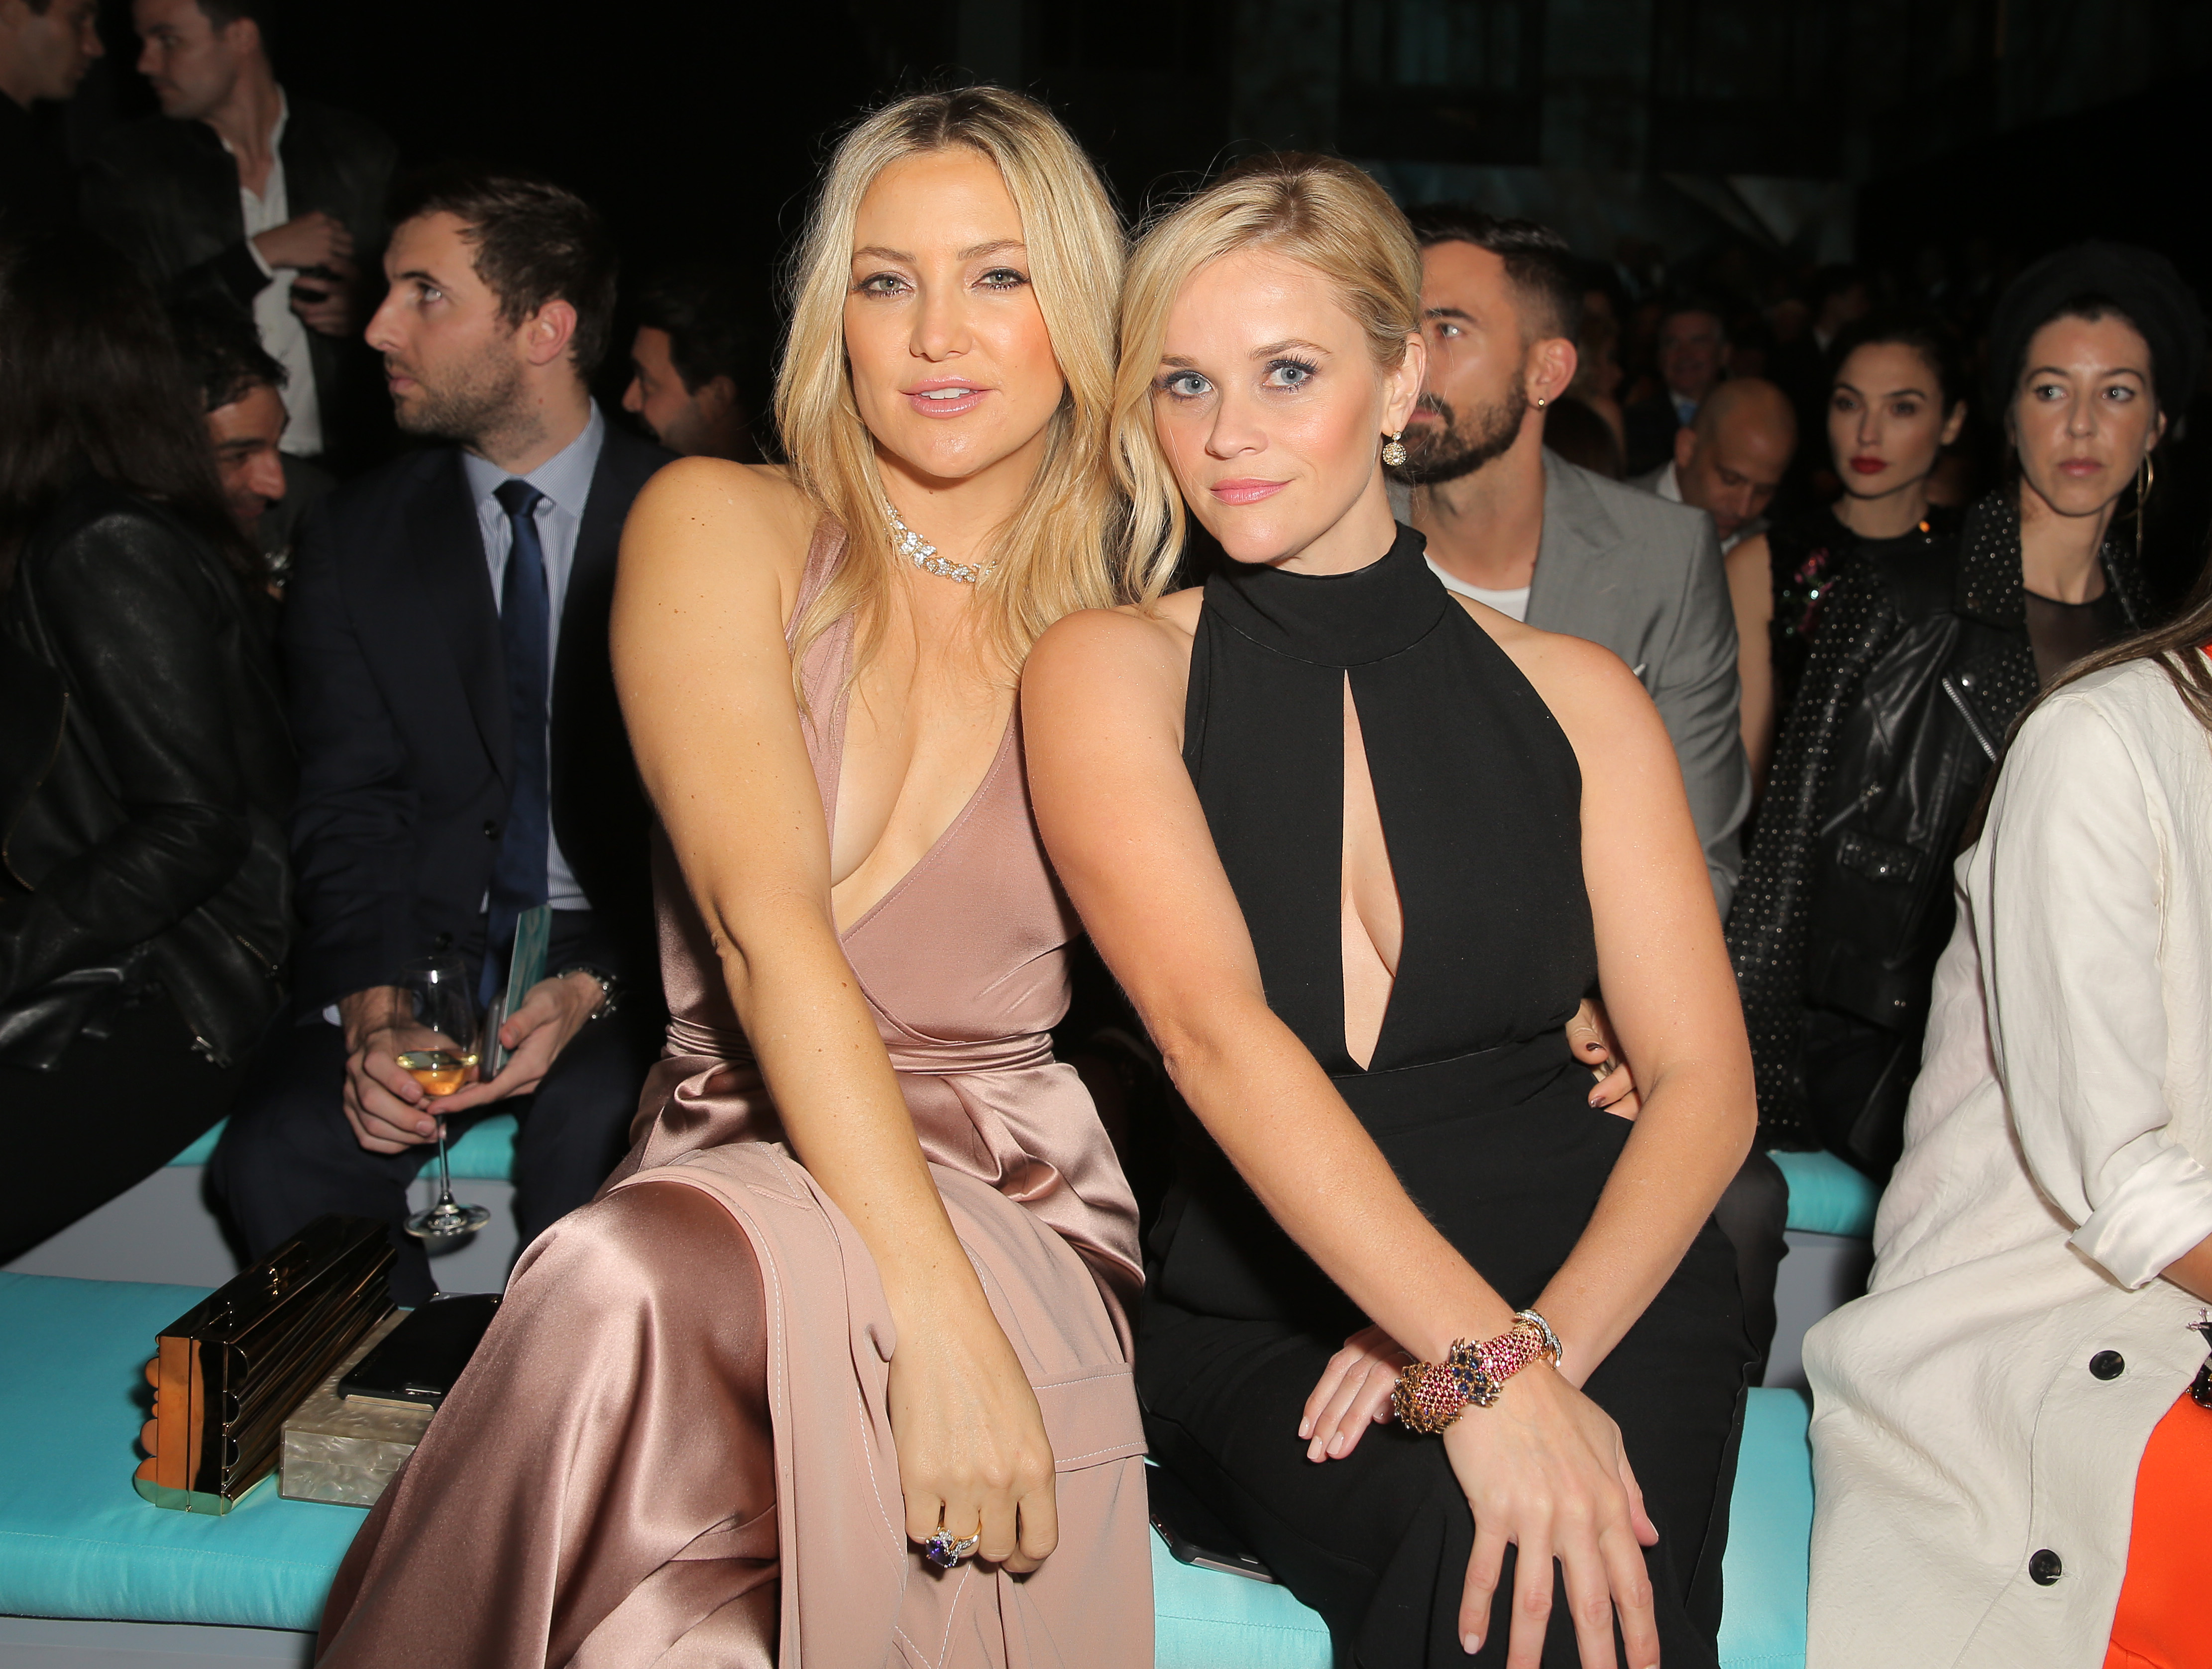 Tiffany & Co. Rodeo Drive Party Kate Hudson Reese Witherspoon